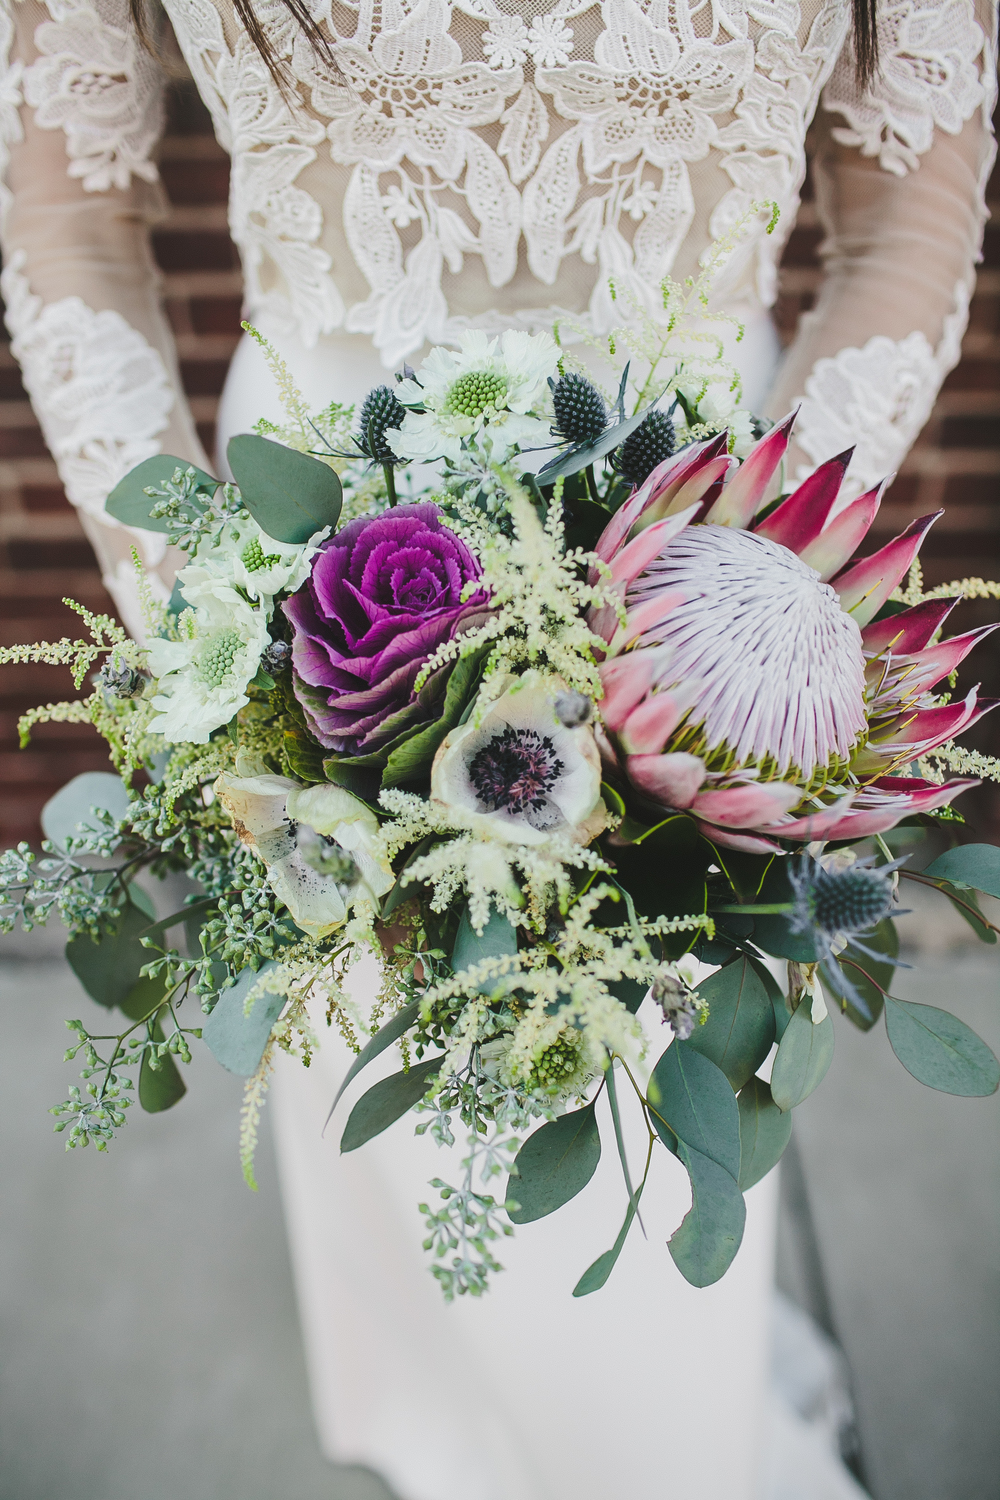 Jenna_Kneale_Wedding_Bridal_Bouquet